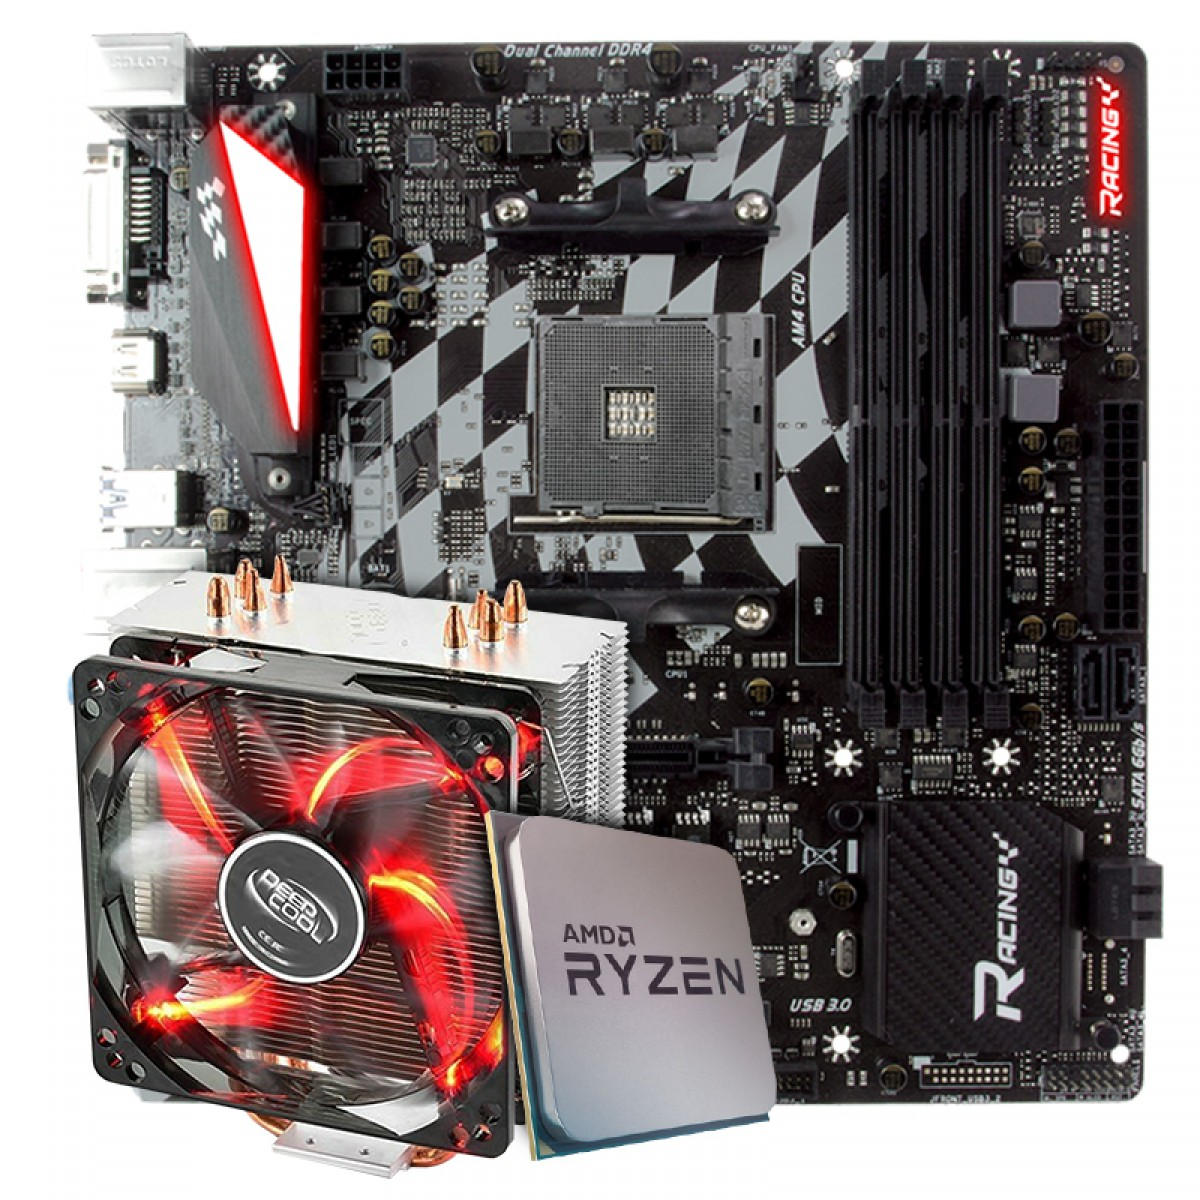 Kit Upgrade Placa Mãe Biostar Racing X470GTQ + Processador AMD Ryzen 7 3800x 3.9GHz + Cooler DeepCool Gammaxx 400